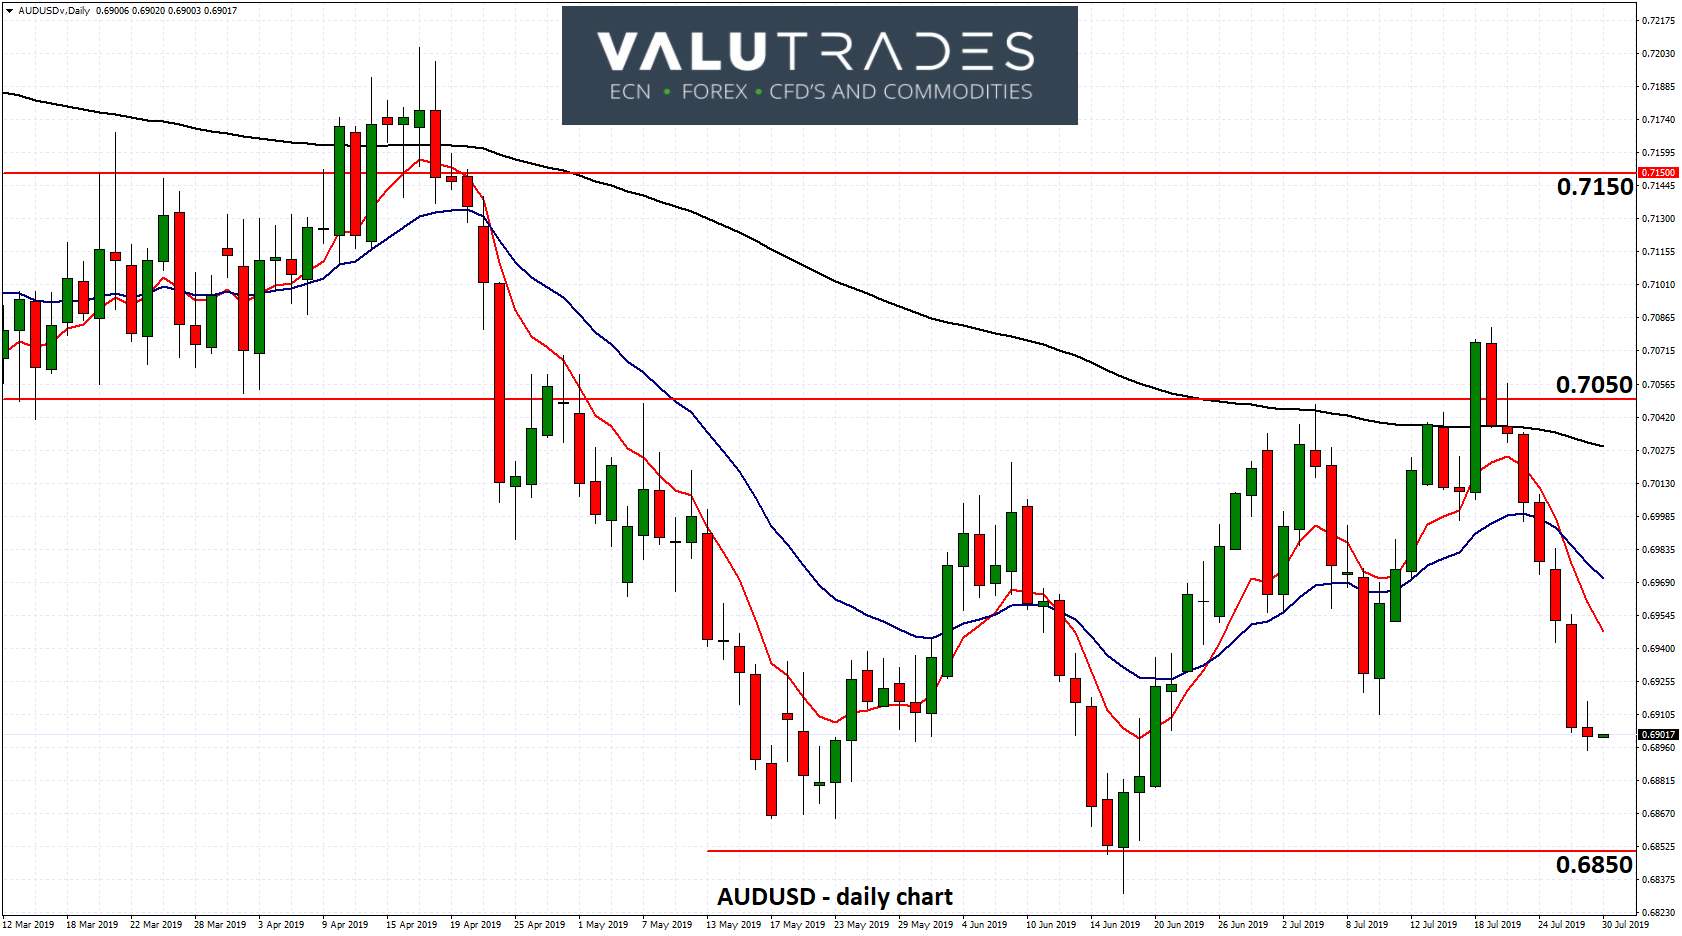 AUDUSD - Eyes off Support at 0.6850 as RBA Commits to Low Interest Rates